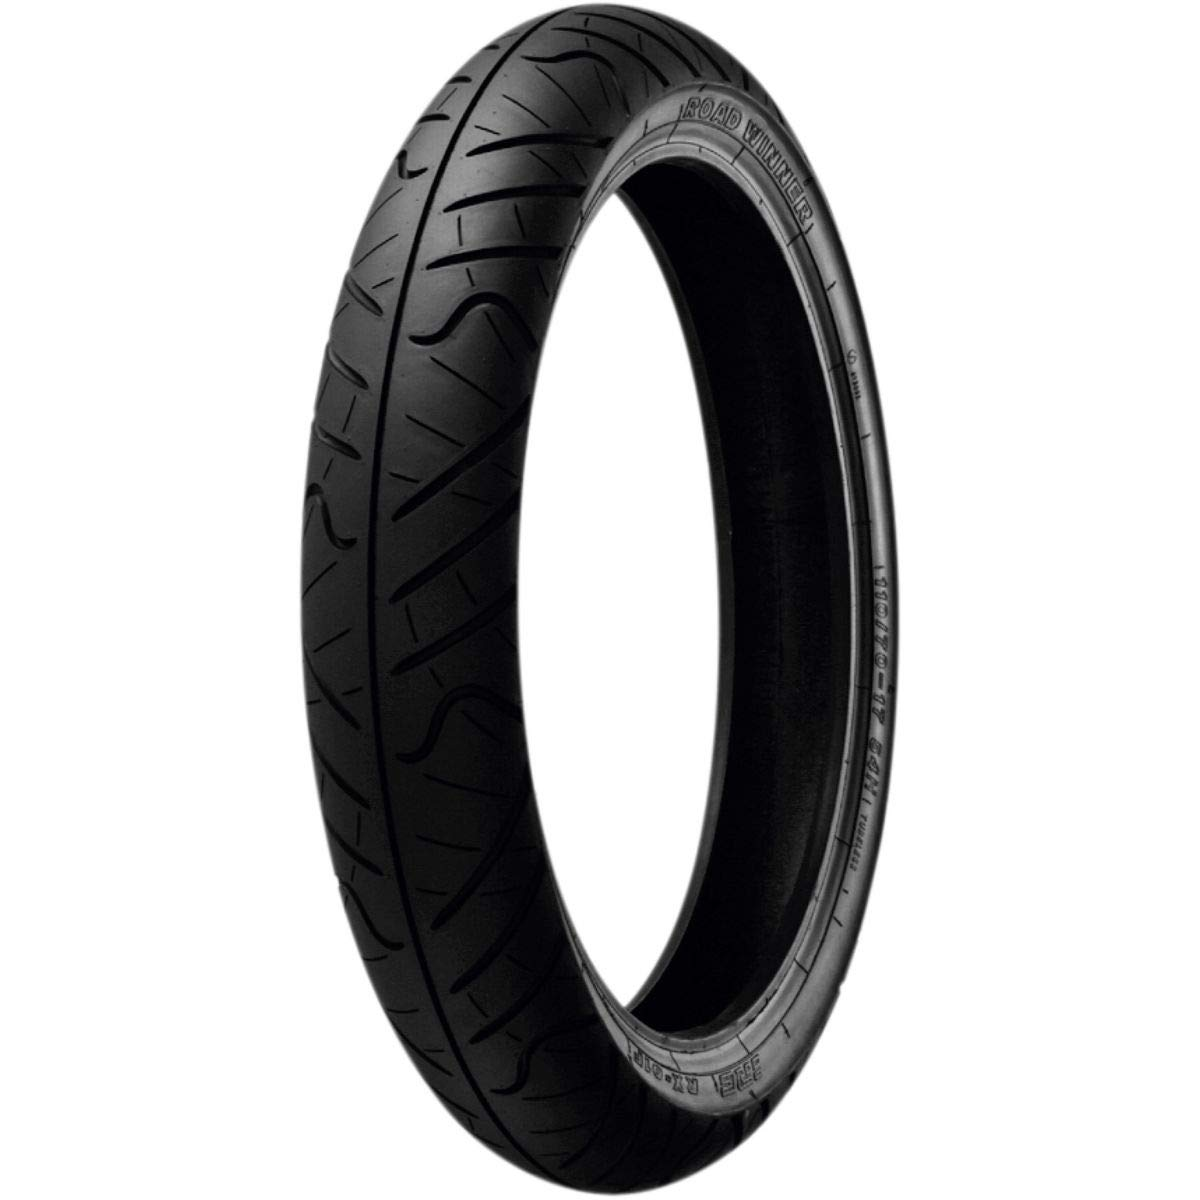 IRC RX-01 Road Winner Front Tire (110/70-17)